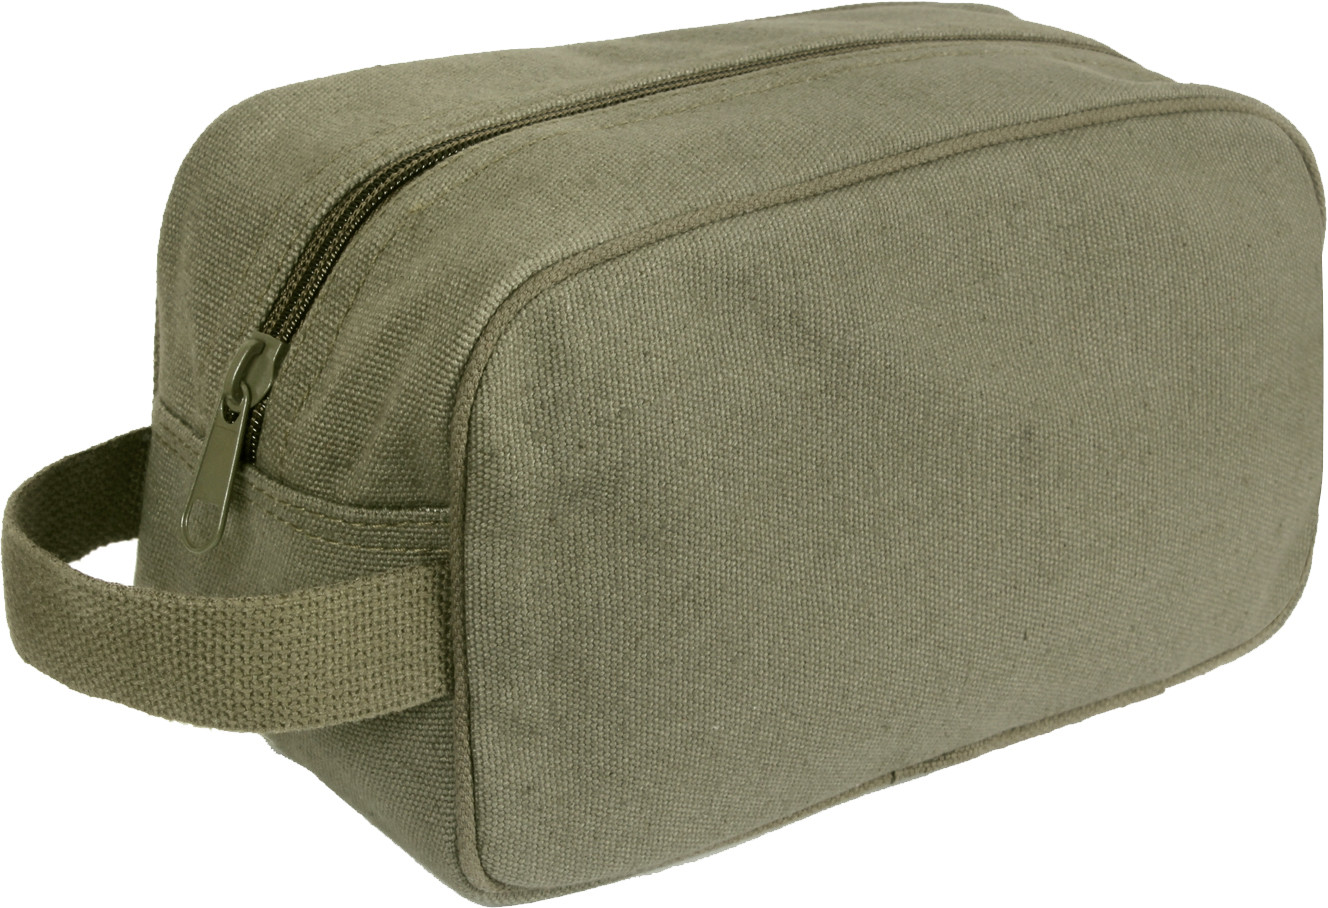 0be8ddfef42b Olive Drab Heavy Canvas Travel Kit Toiletry Case